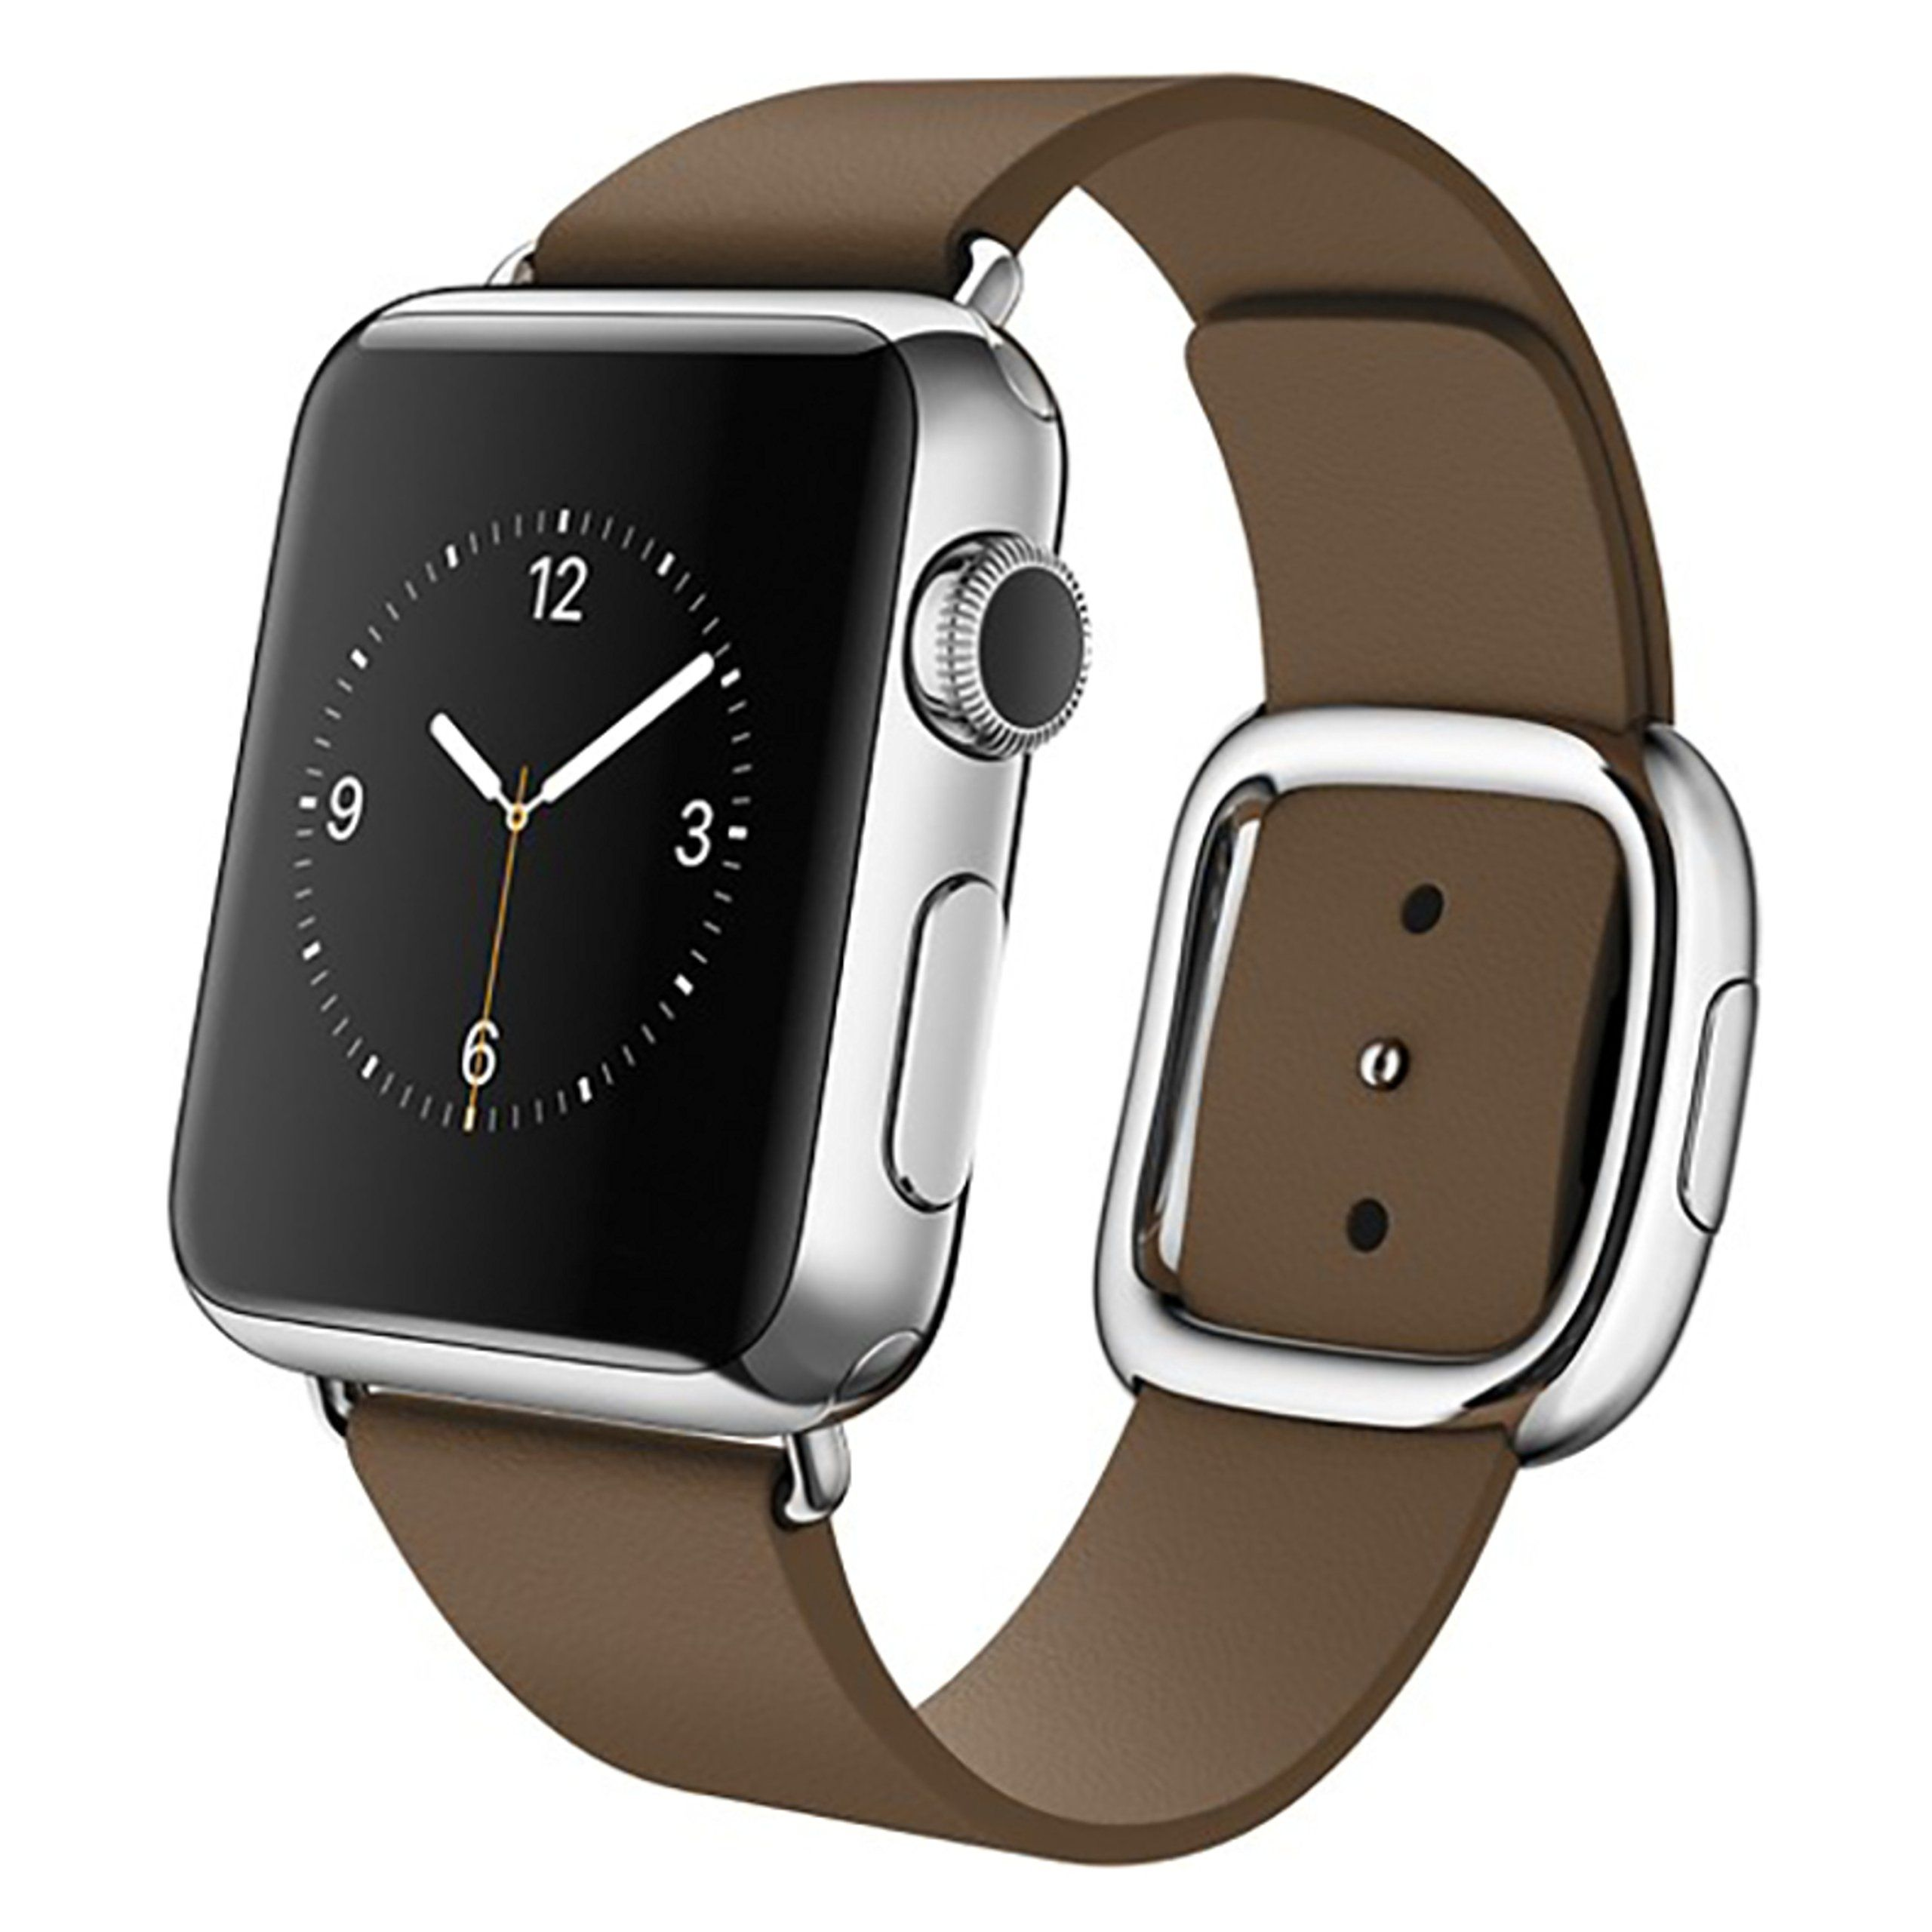 Apple Watch 38mm Stainless Steel Case With Brown Modern Buckle Small Certified Refurbished Read More Reviews O In 2020 Apple Watch Smart Watch Apple Buy Apple Watch